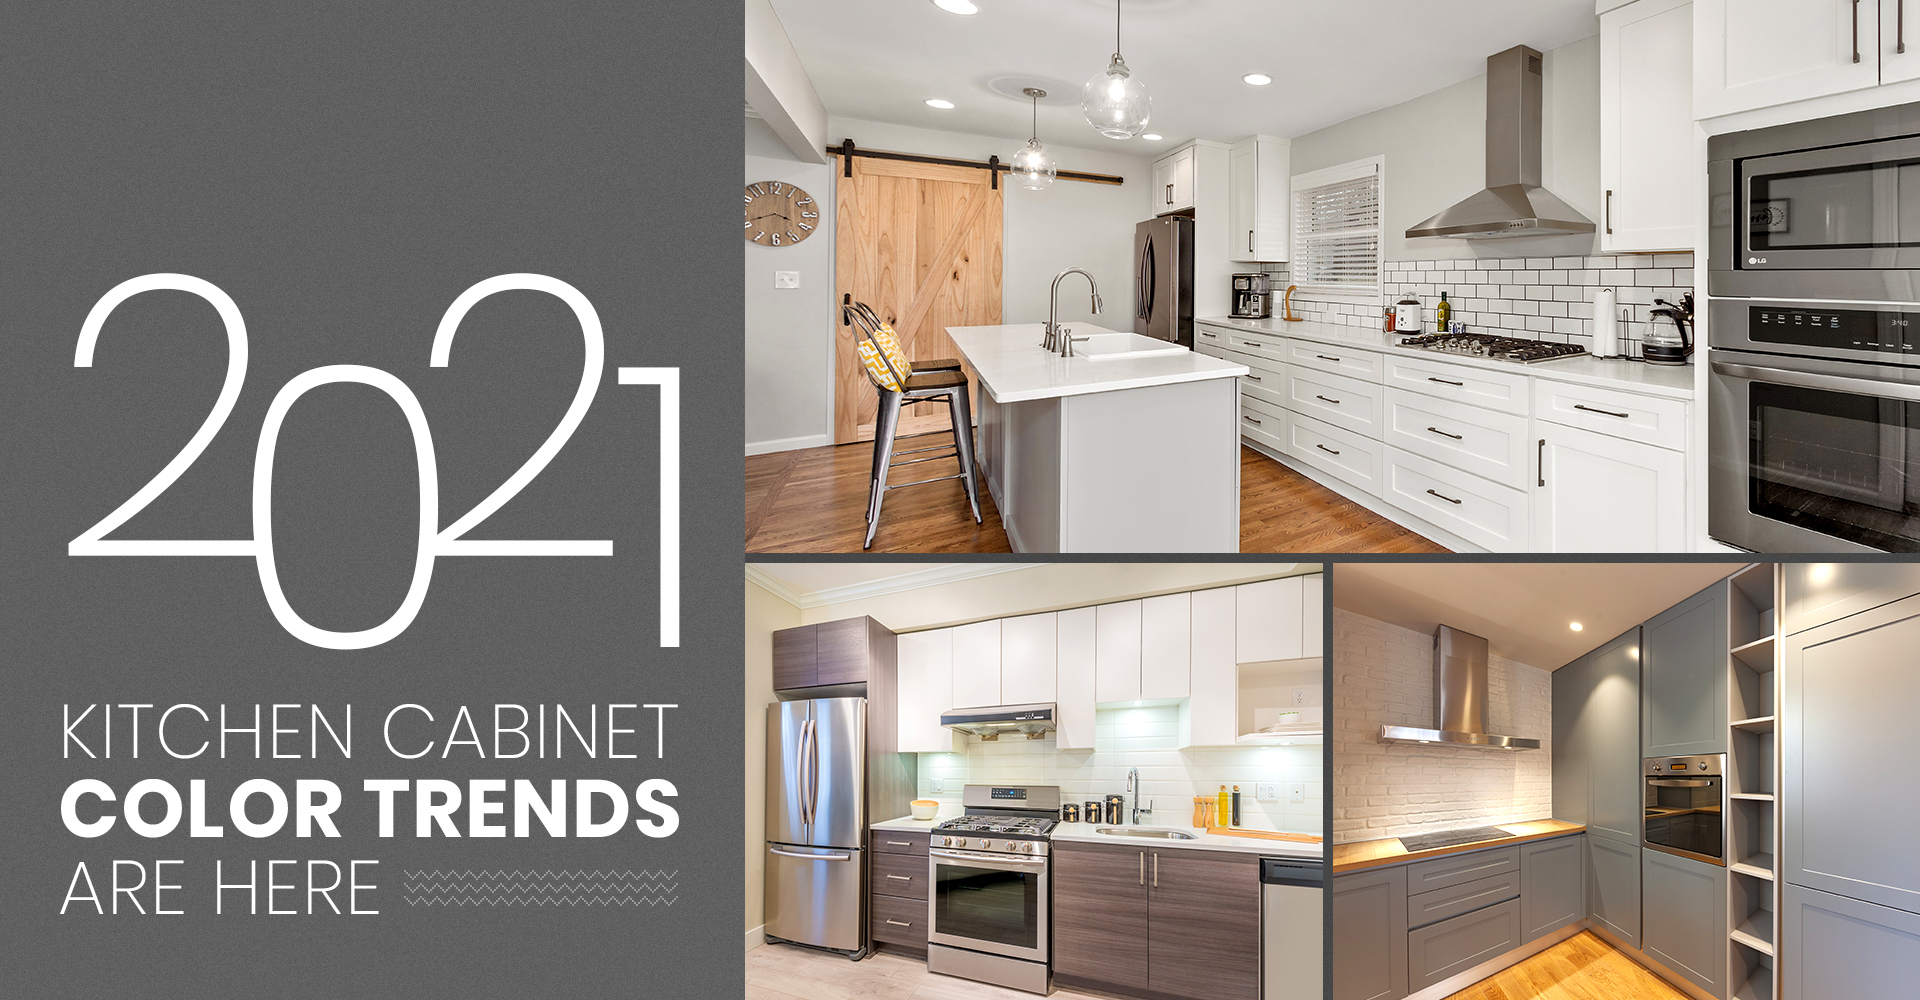 9 Kitchen Cabinet Color Trends Are Here   CabinetCorp